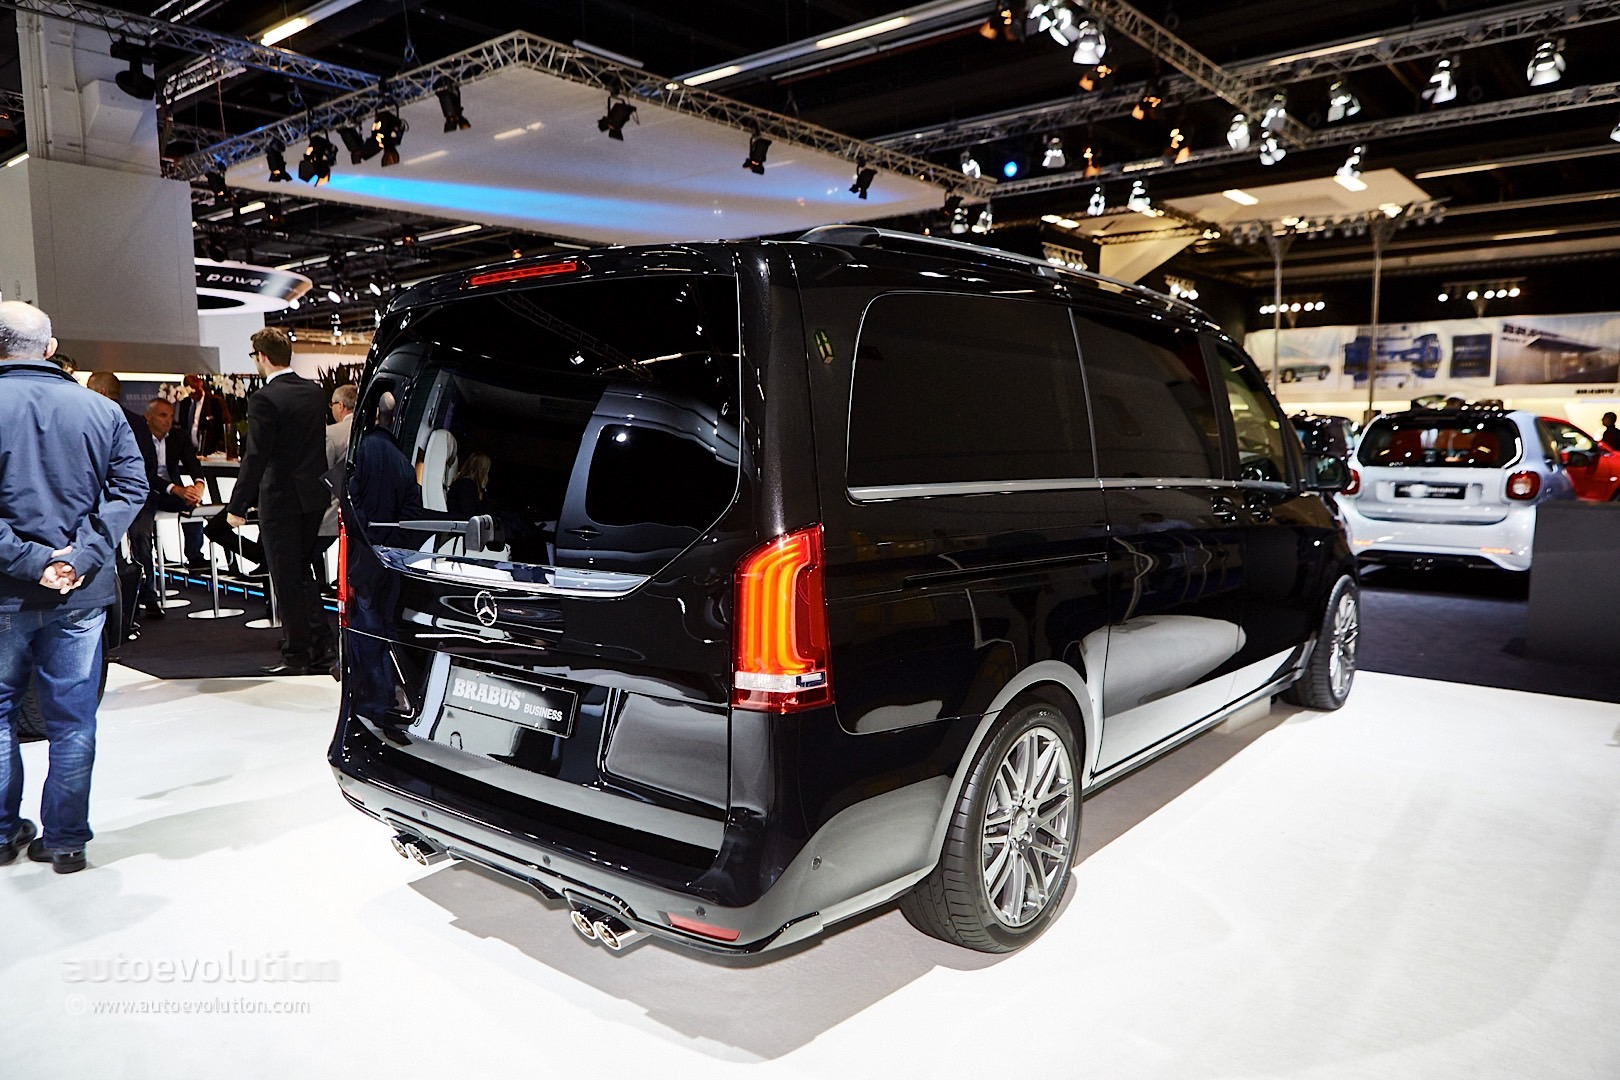 Brabus Sprinter And V Class Fill The Luxury Van Gap In Frankfurt